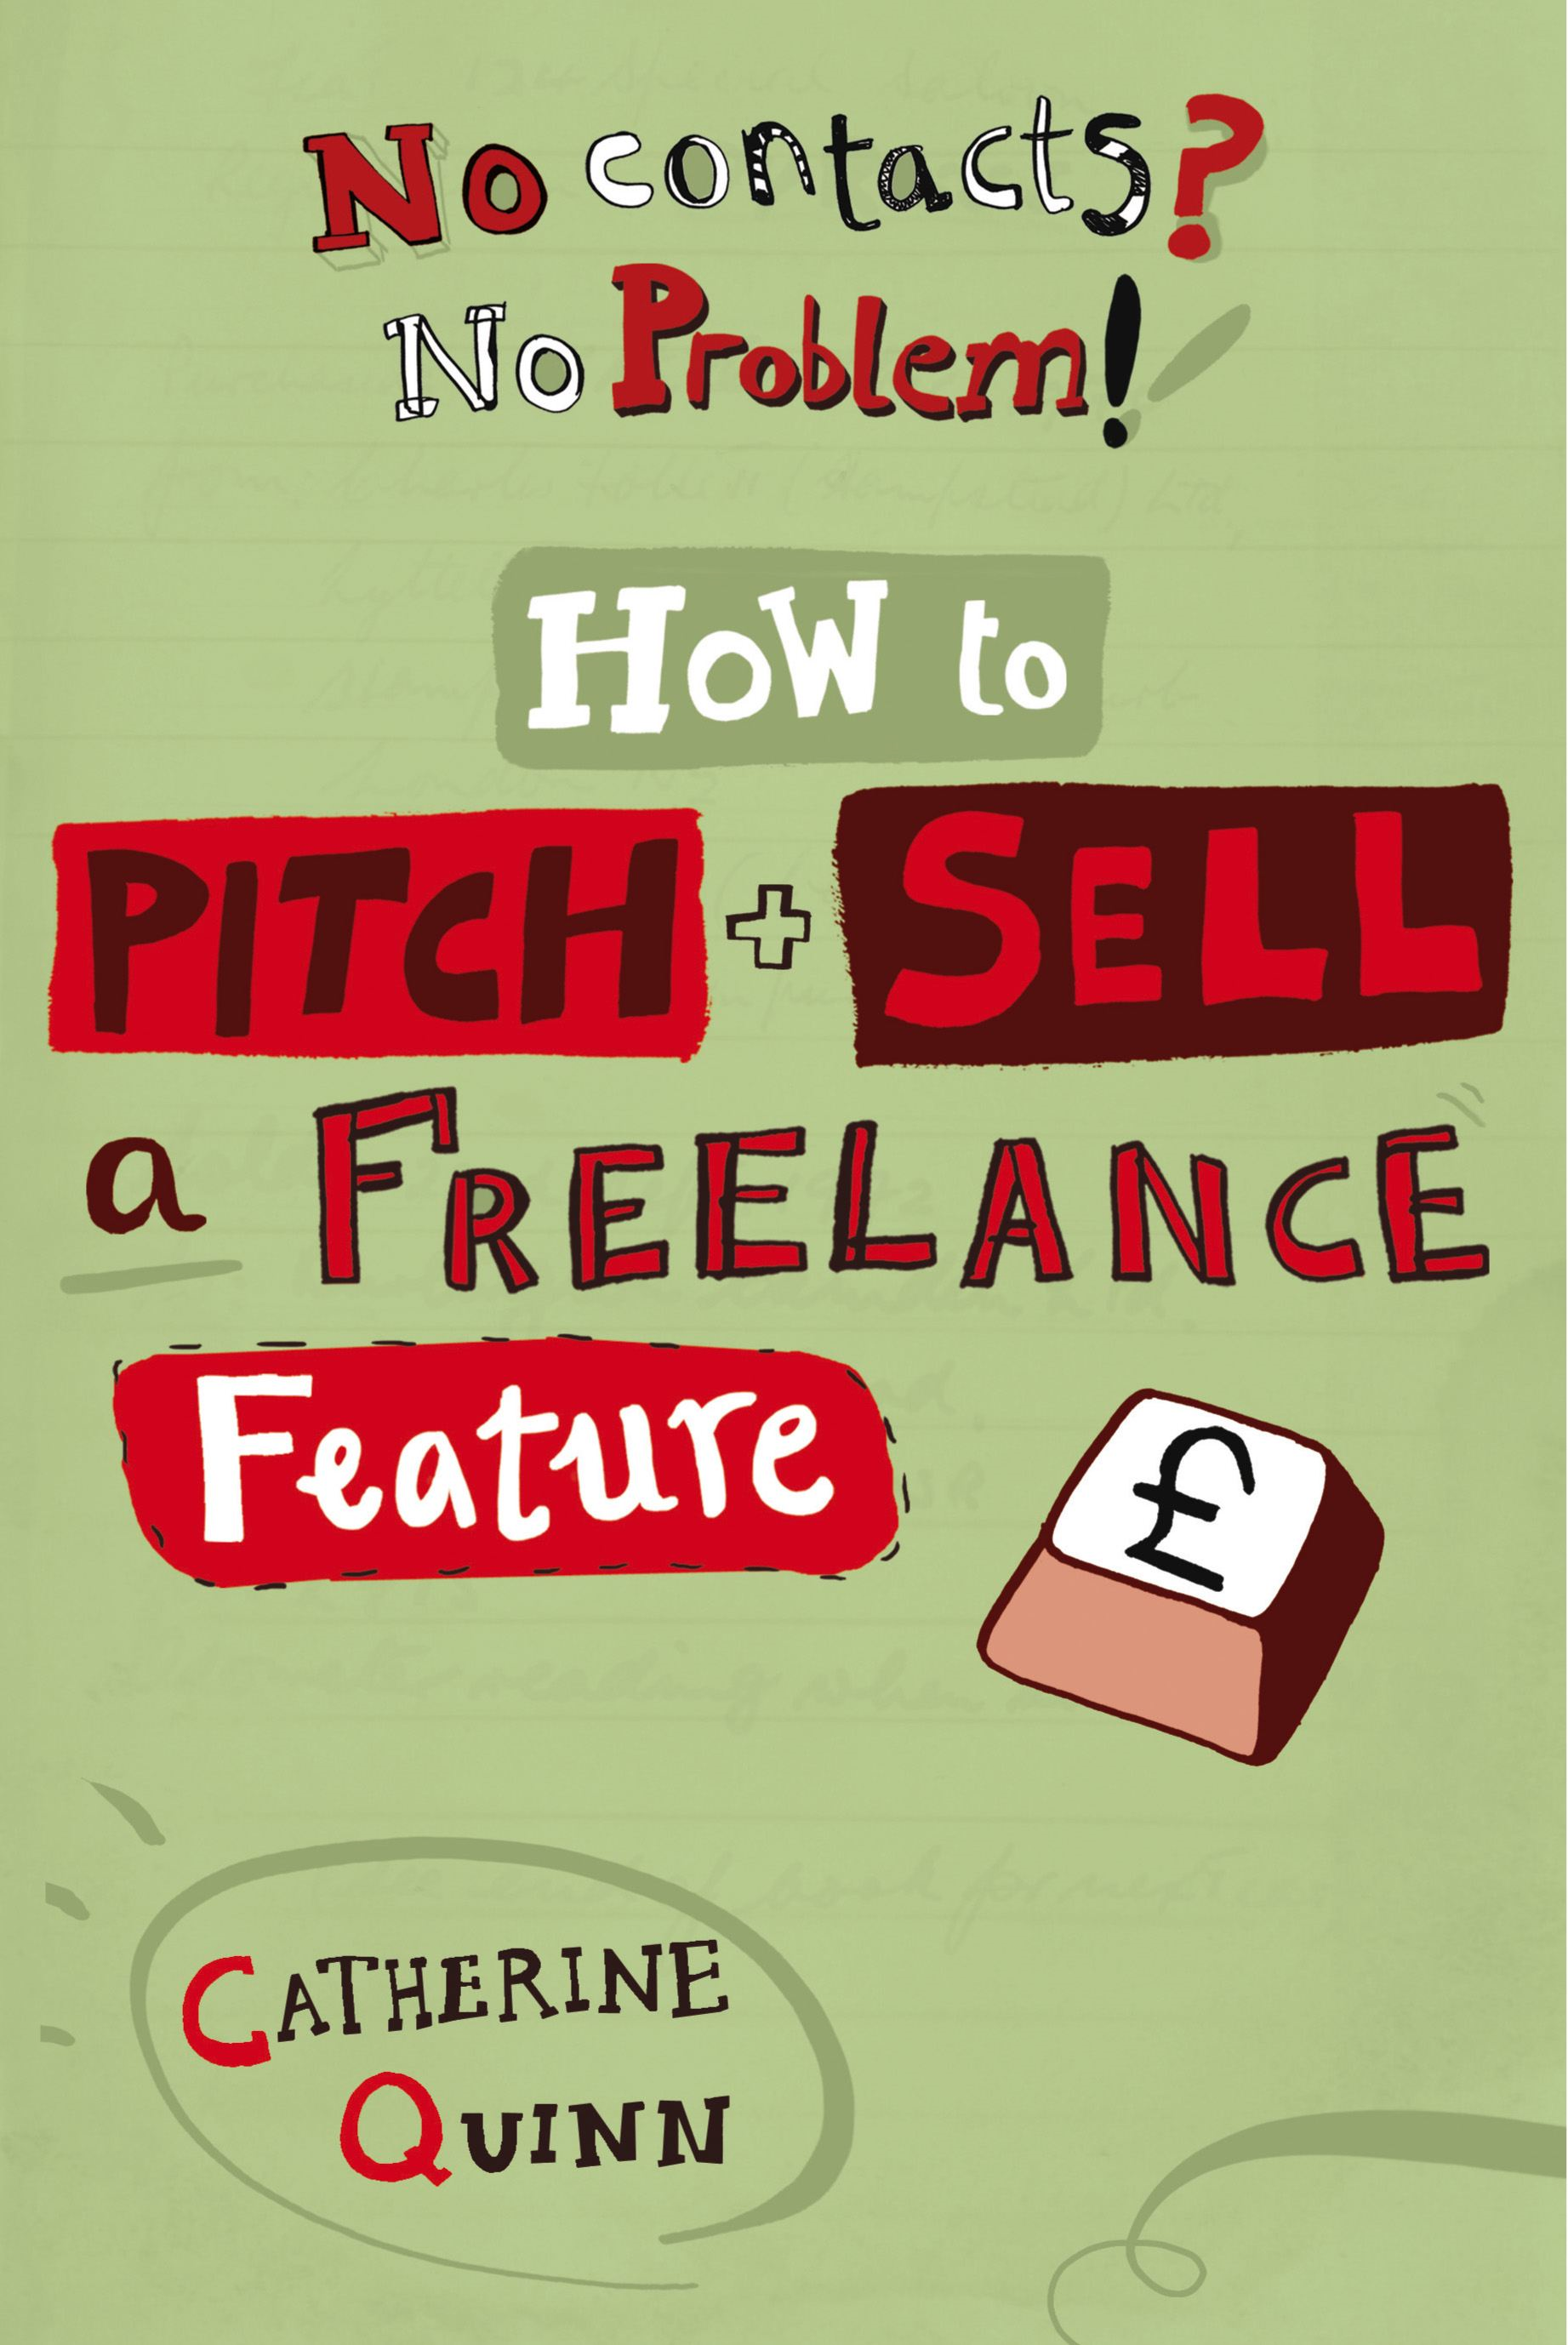 No contacts? No problem! How to Pitch and Sell a Freelance Feature By: Catherine Quinn